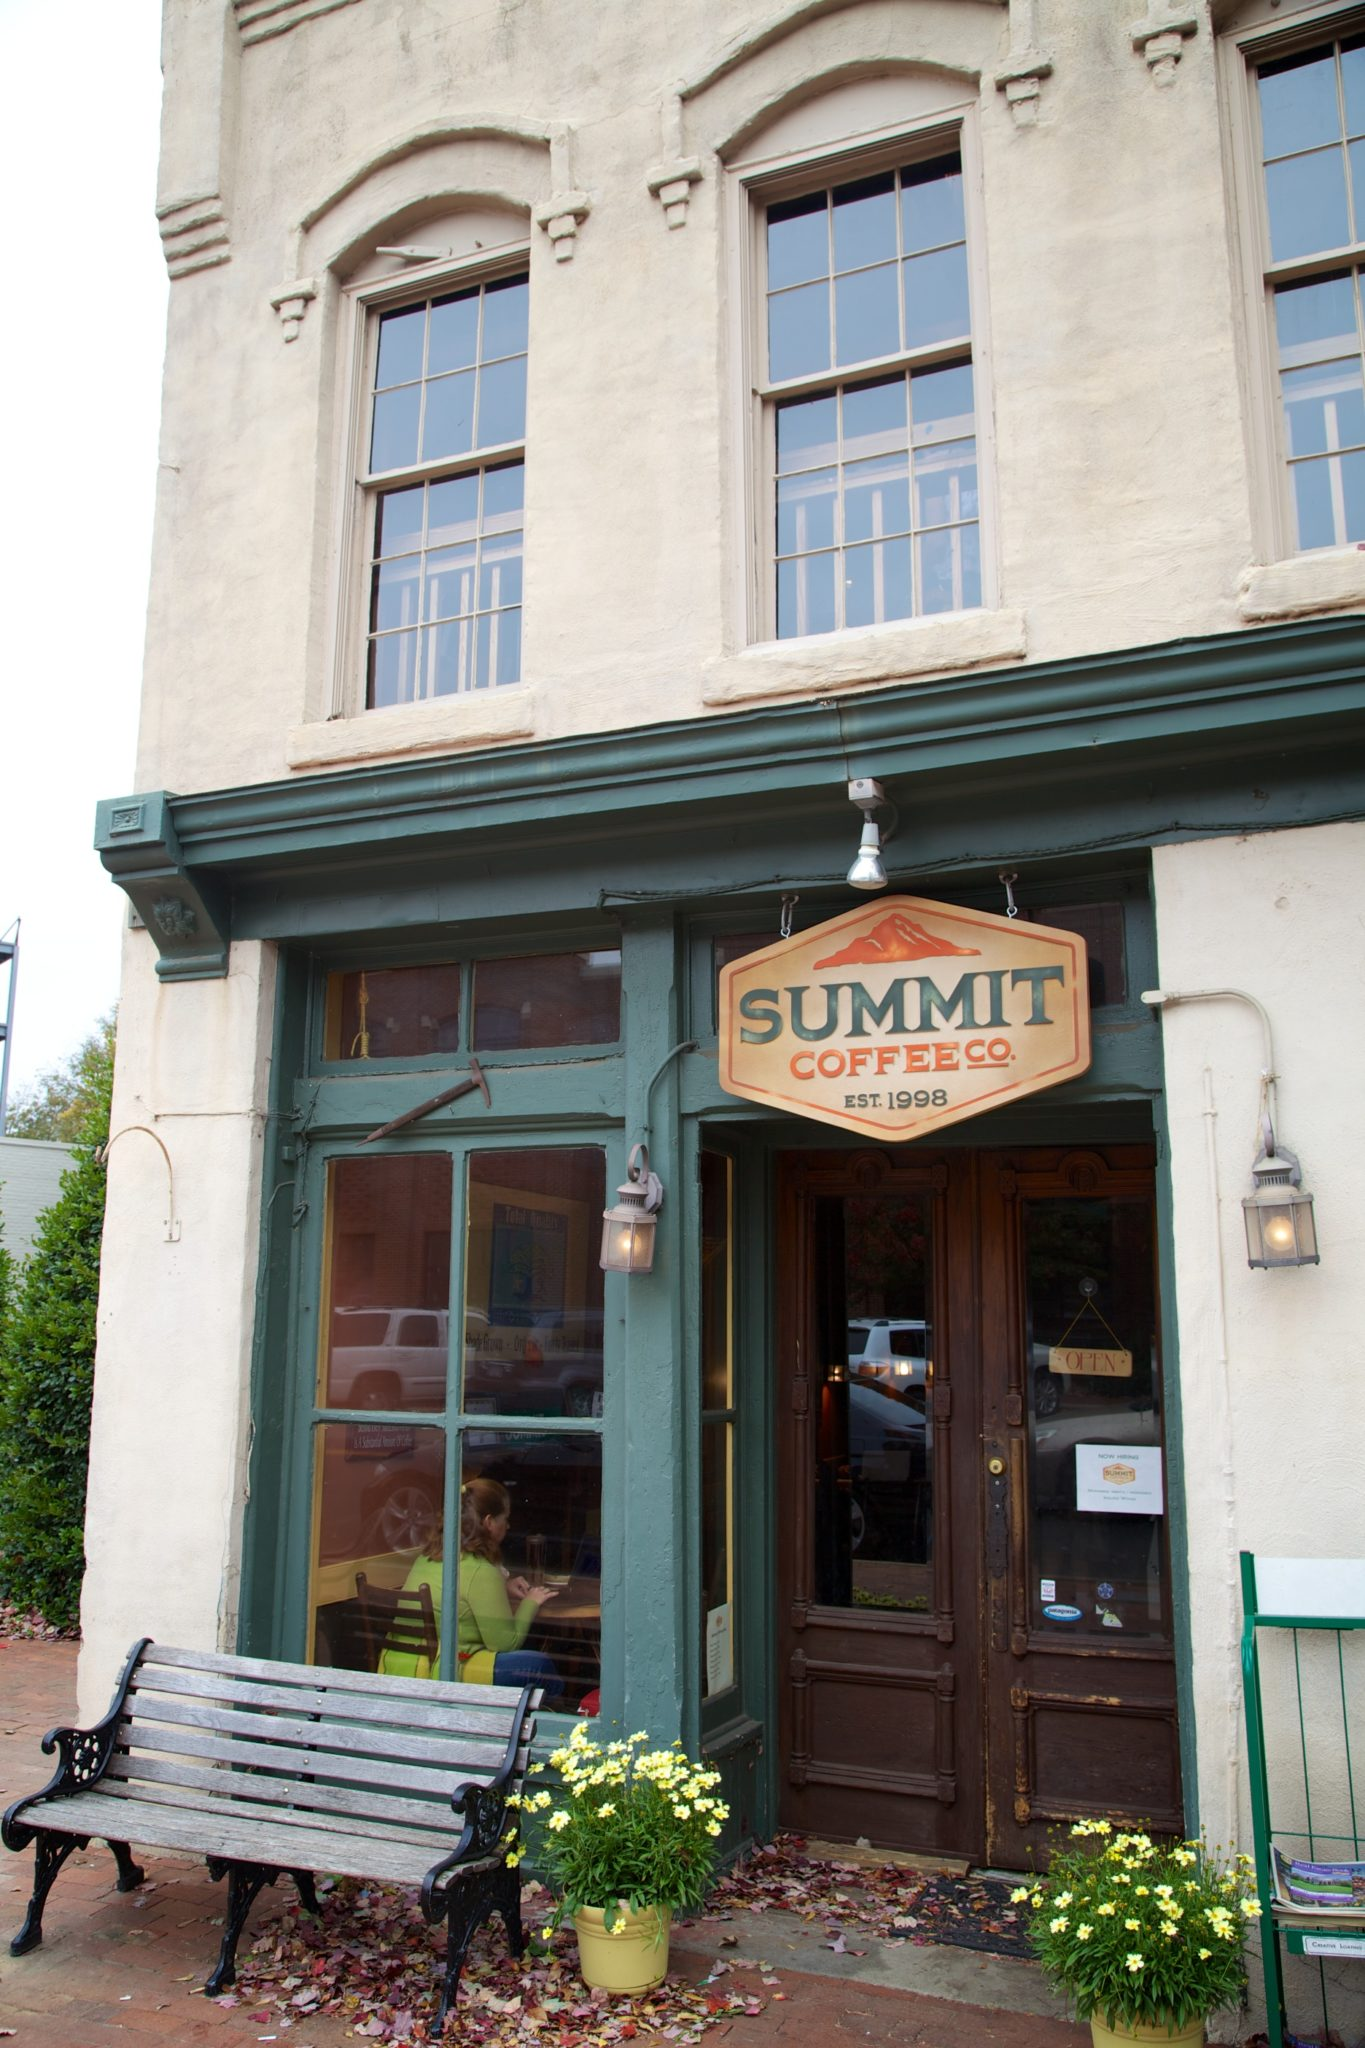 Summit coffee was great